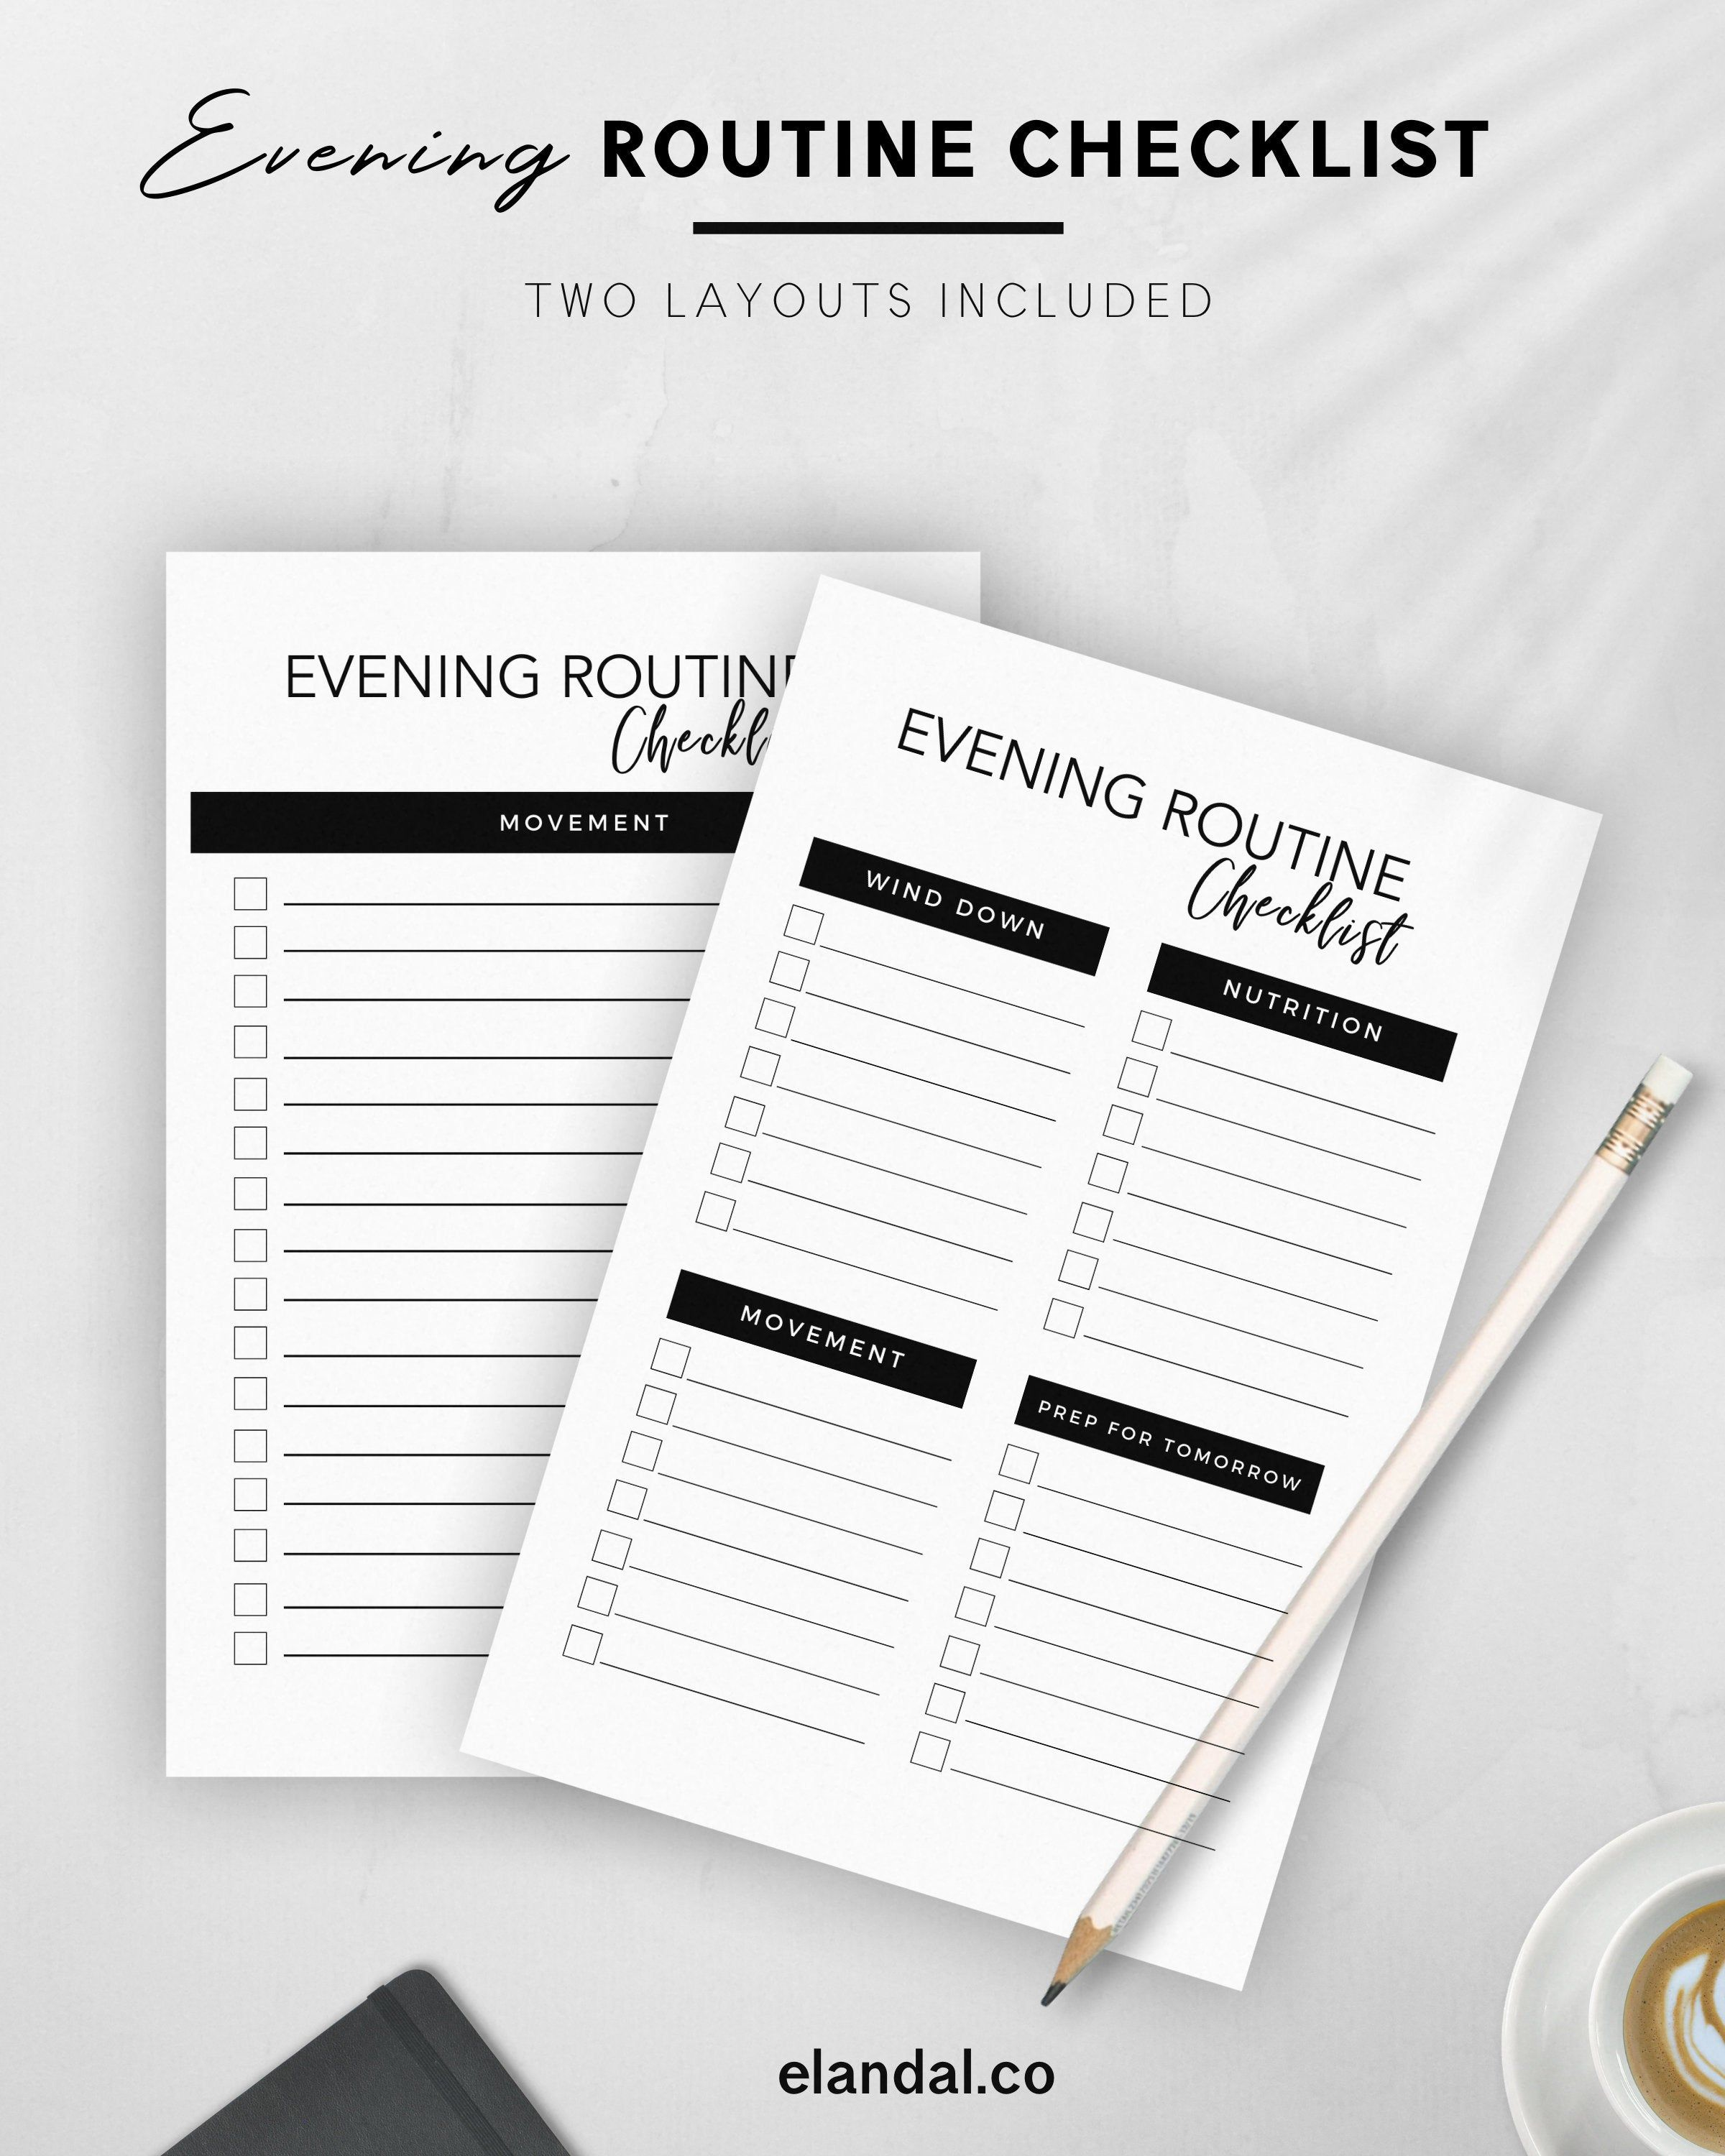 Evening Routine Printable Checklist For Adults Habit